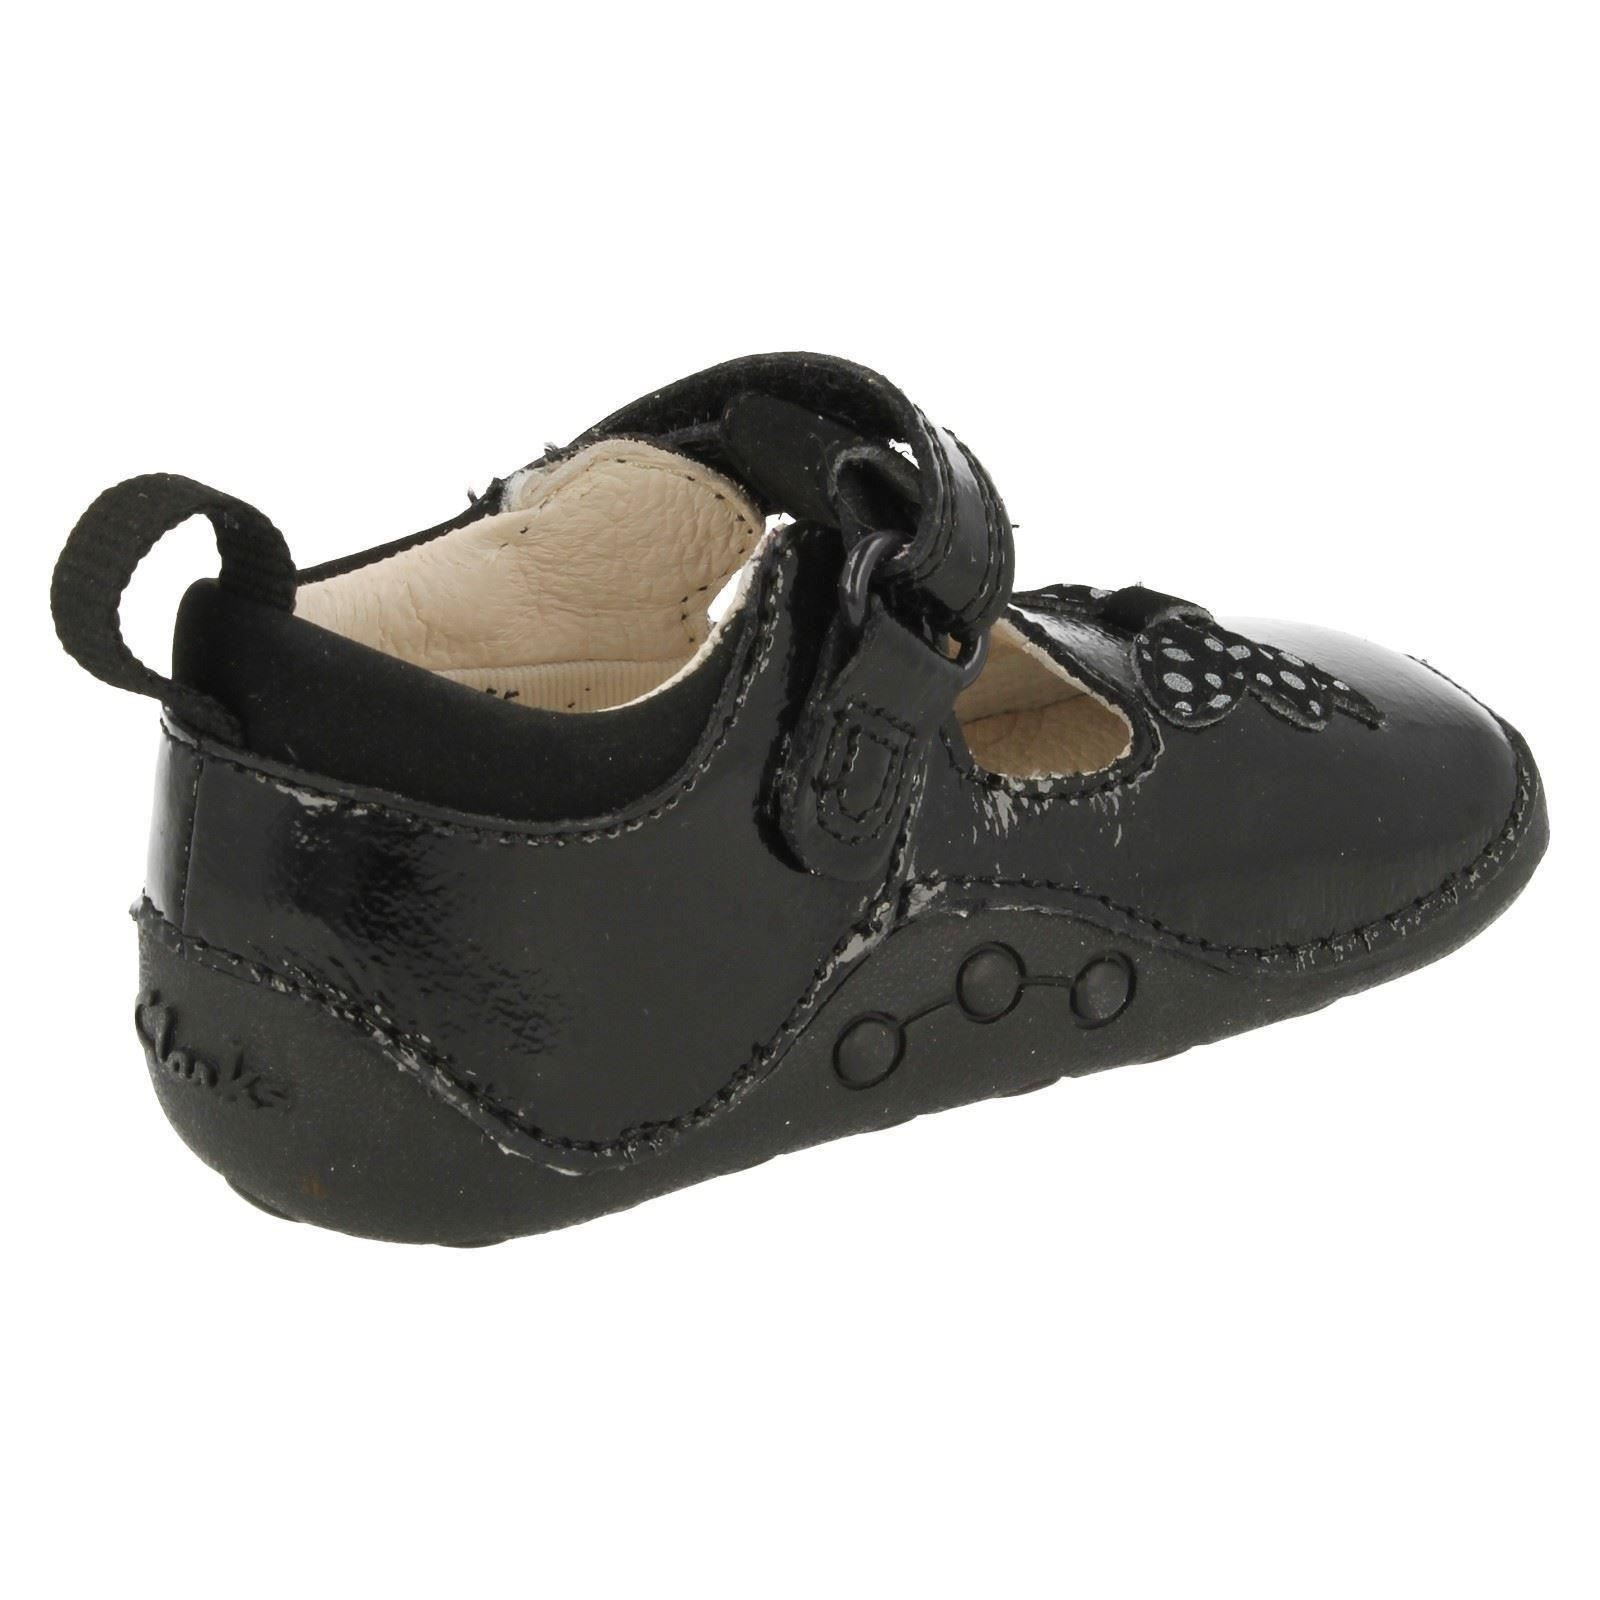 Ebay Clarks Baby Shoes